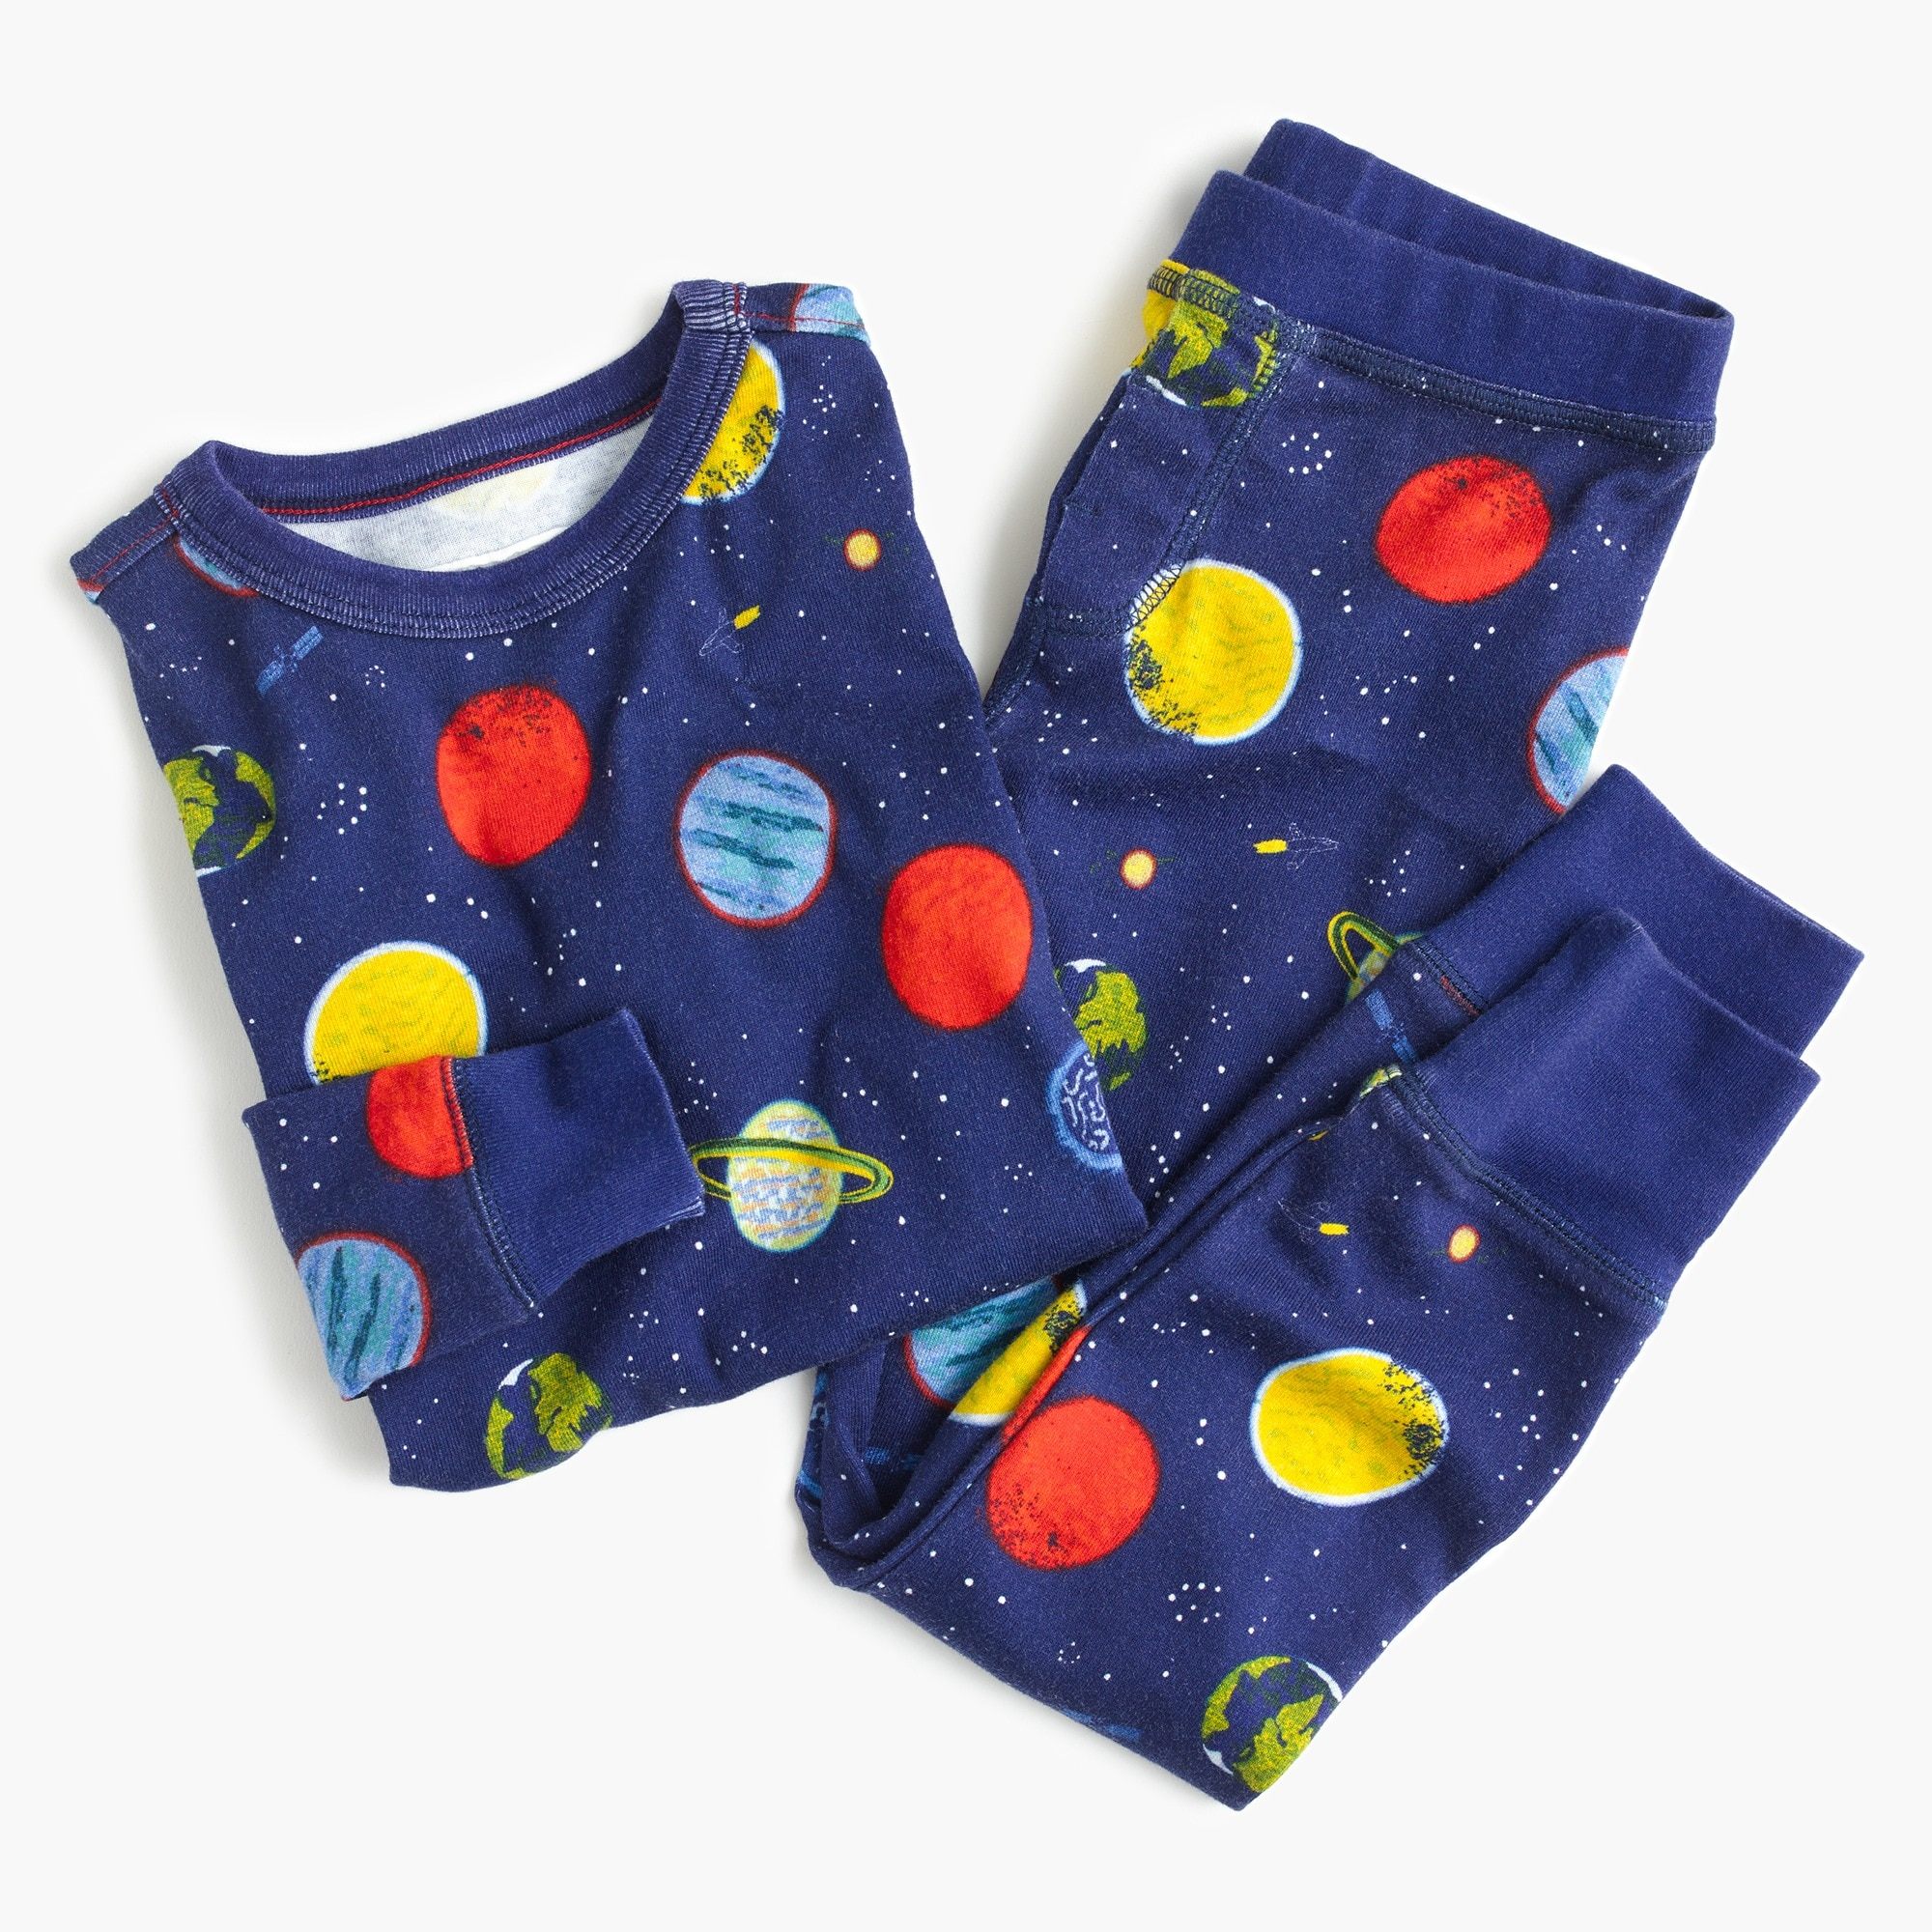 Kids' pajama set in planet print